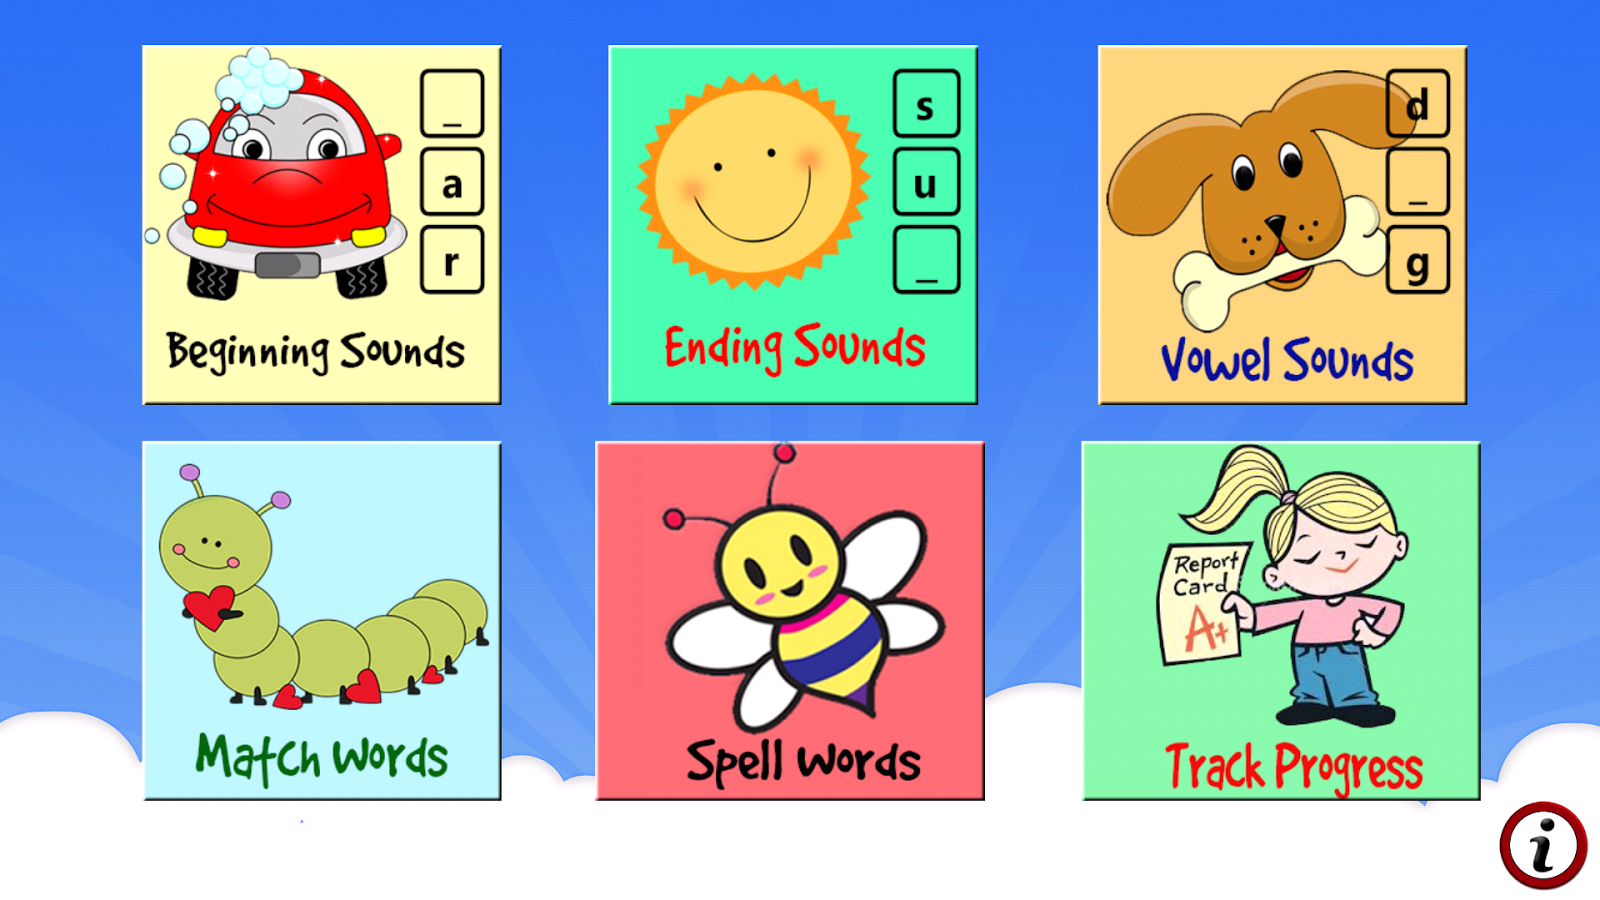 Worksheet Kindergarten 1 phonics reading kindergarten 1 android apps on google play screenshot